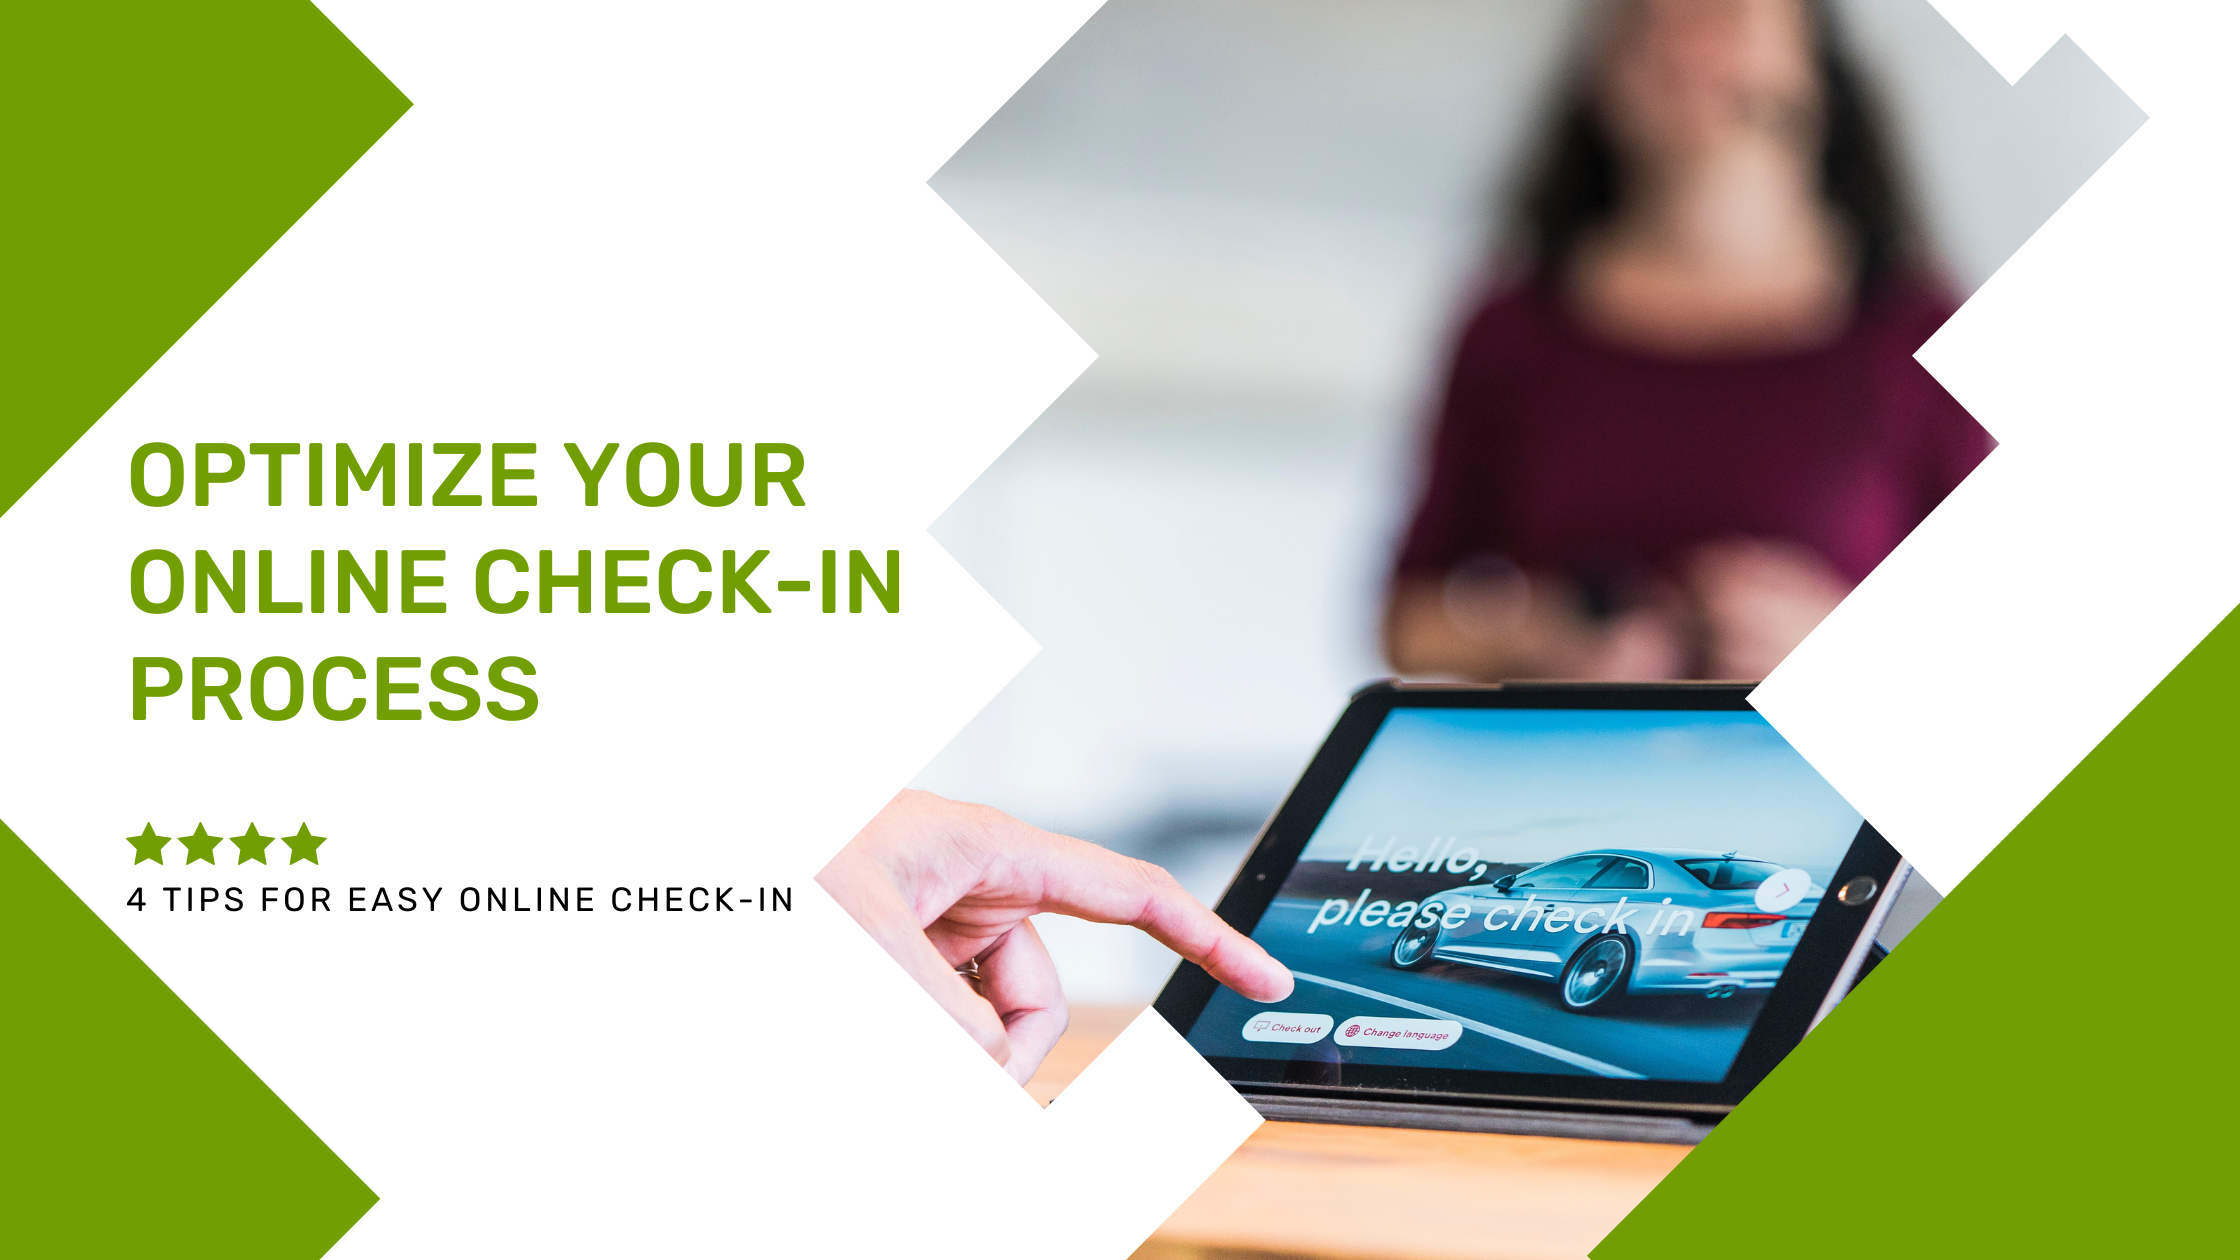 Optimize Your Online Check-in Process: 4 Tips